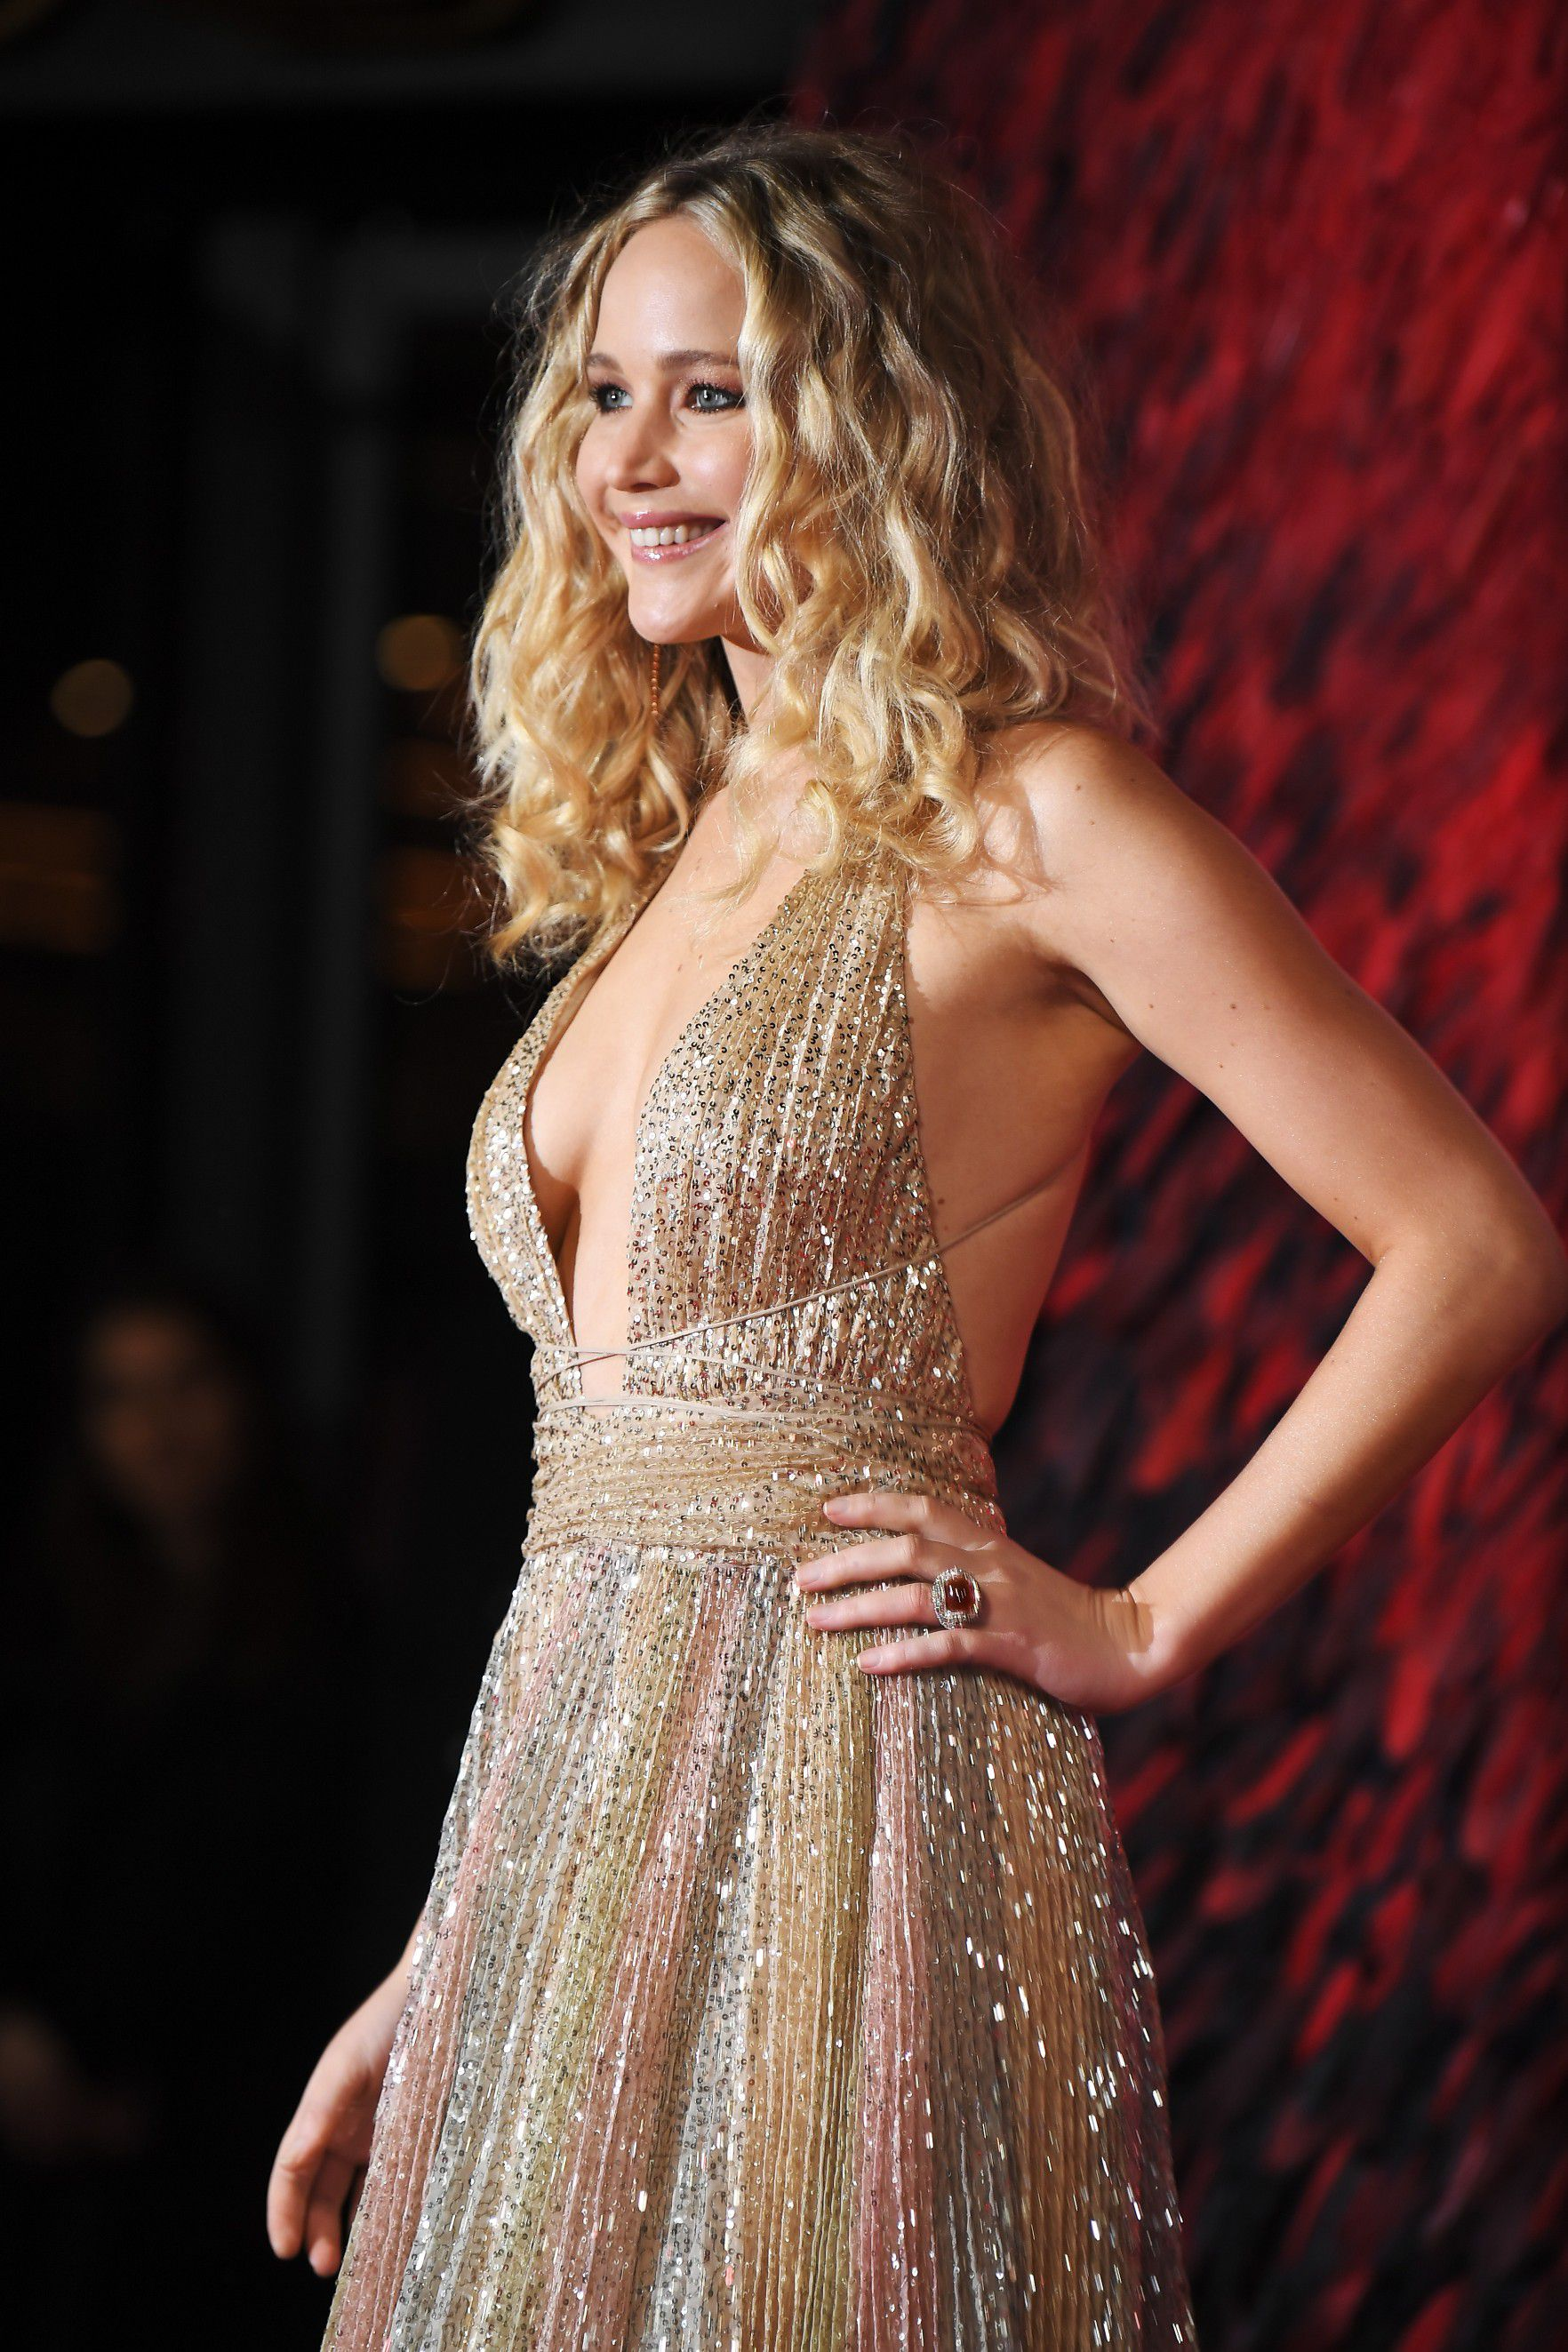 jennifer-lawrence-cleavage-at-red-sparrow-premiere-in-london-4325